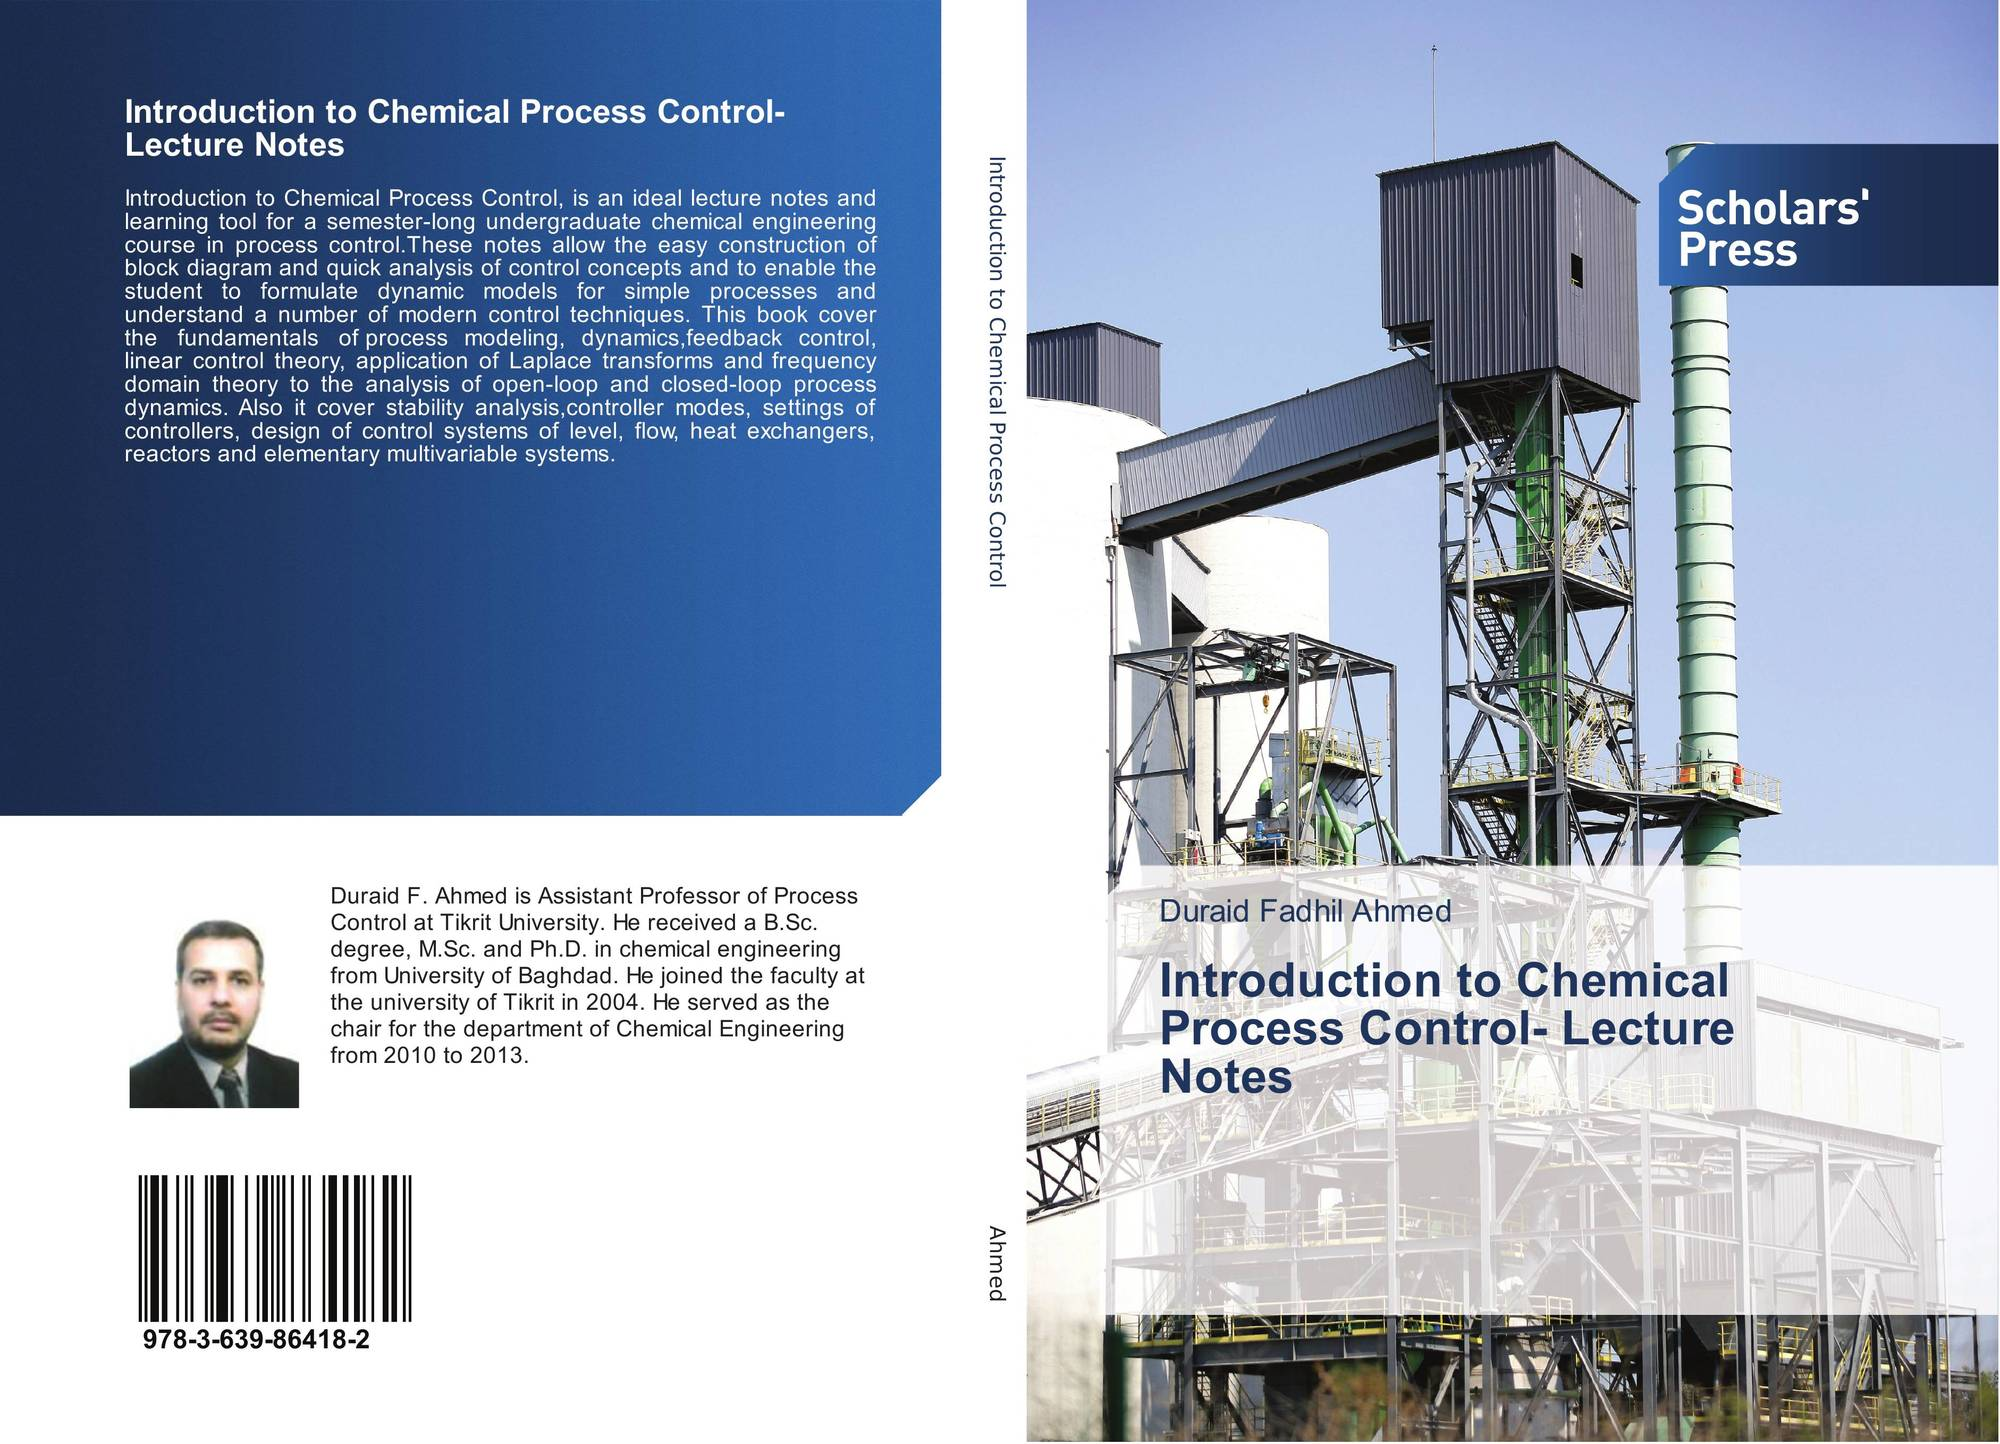 introduction to chemical process industries Newton-chemical engineering cost estimation ba'ichero-introduction to chemical engineering clarke-m anual for proce~s engineering badger and the chemical process industries r norris shreve professor of chemical engineering purdue university , lafayette, ind.